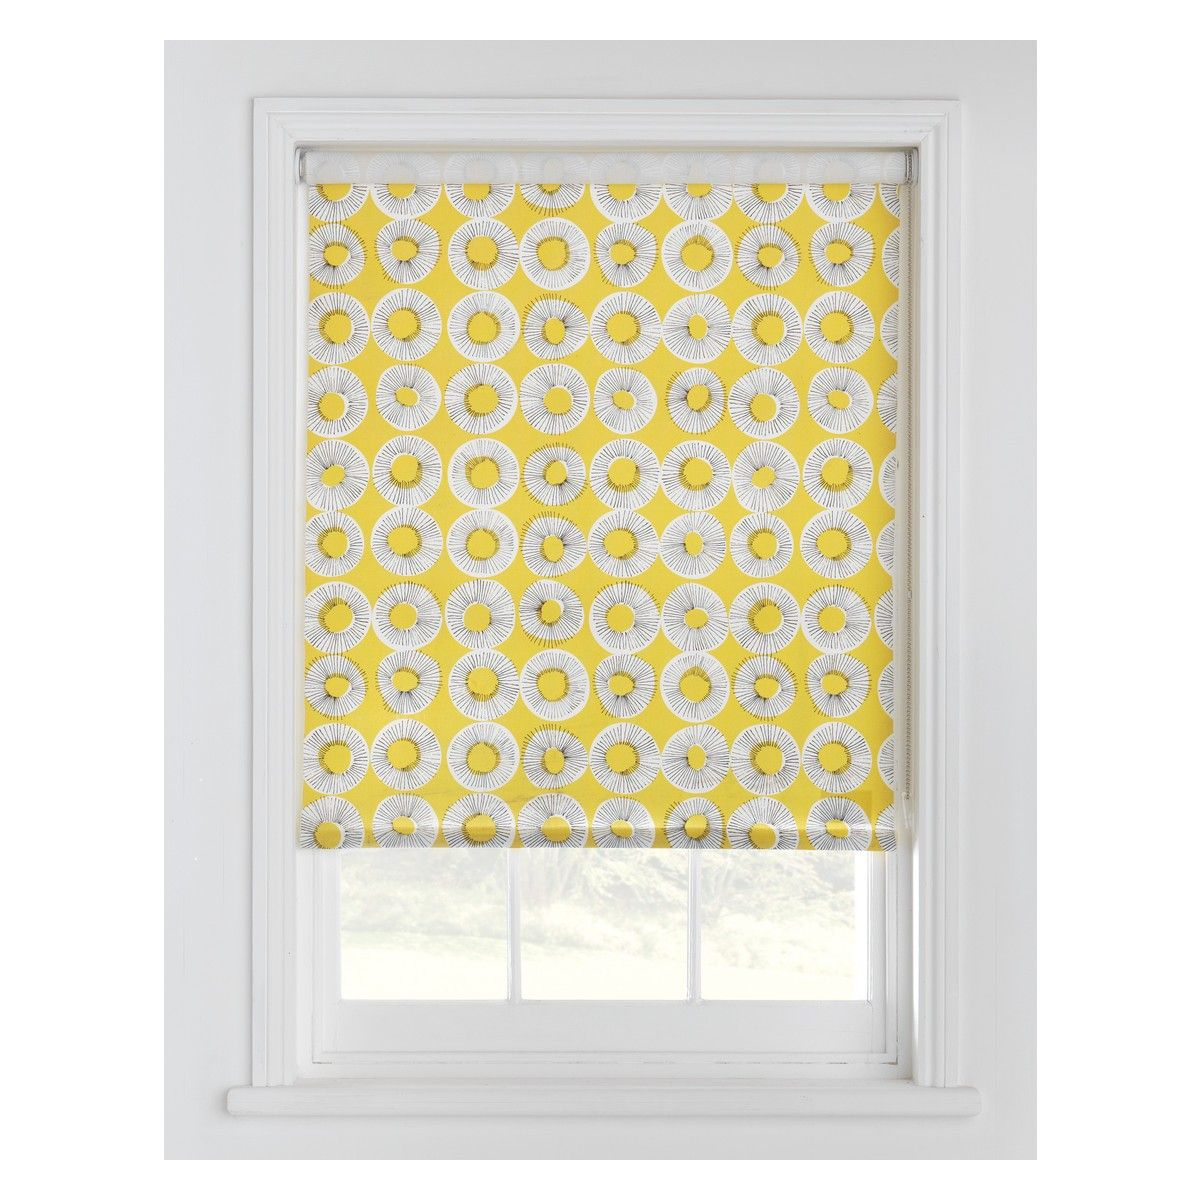 Elegant EVELYN Yellow Patterned Roller Blind 61 X 160cm | Buy Now At Habitat UK